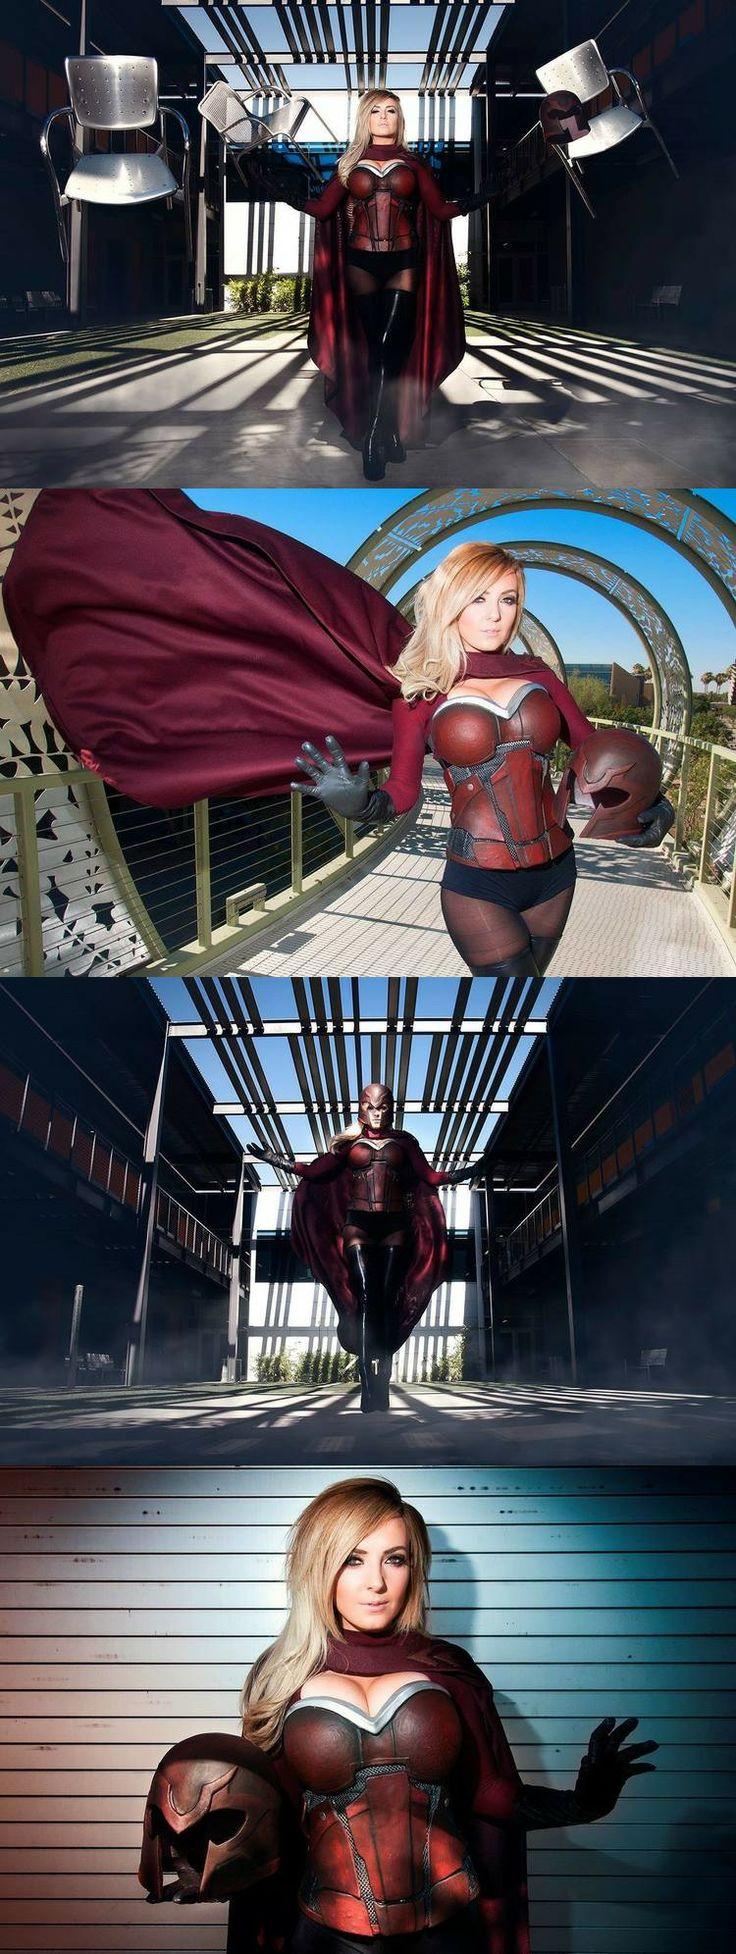 Jessica Nigri as Magneto! I've never seen a Magneto cosplay like this before, and I'm loving it.